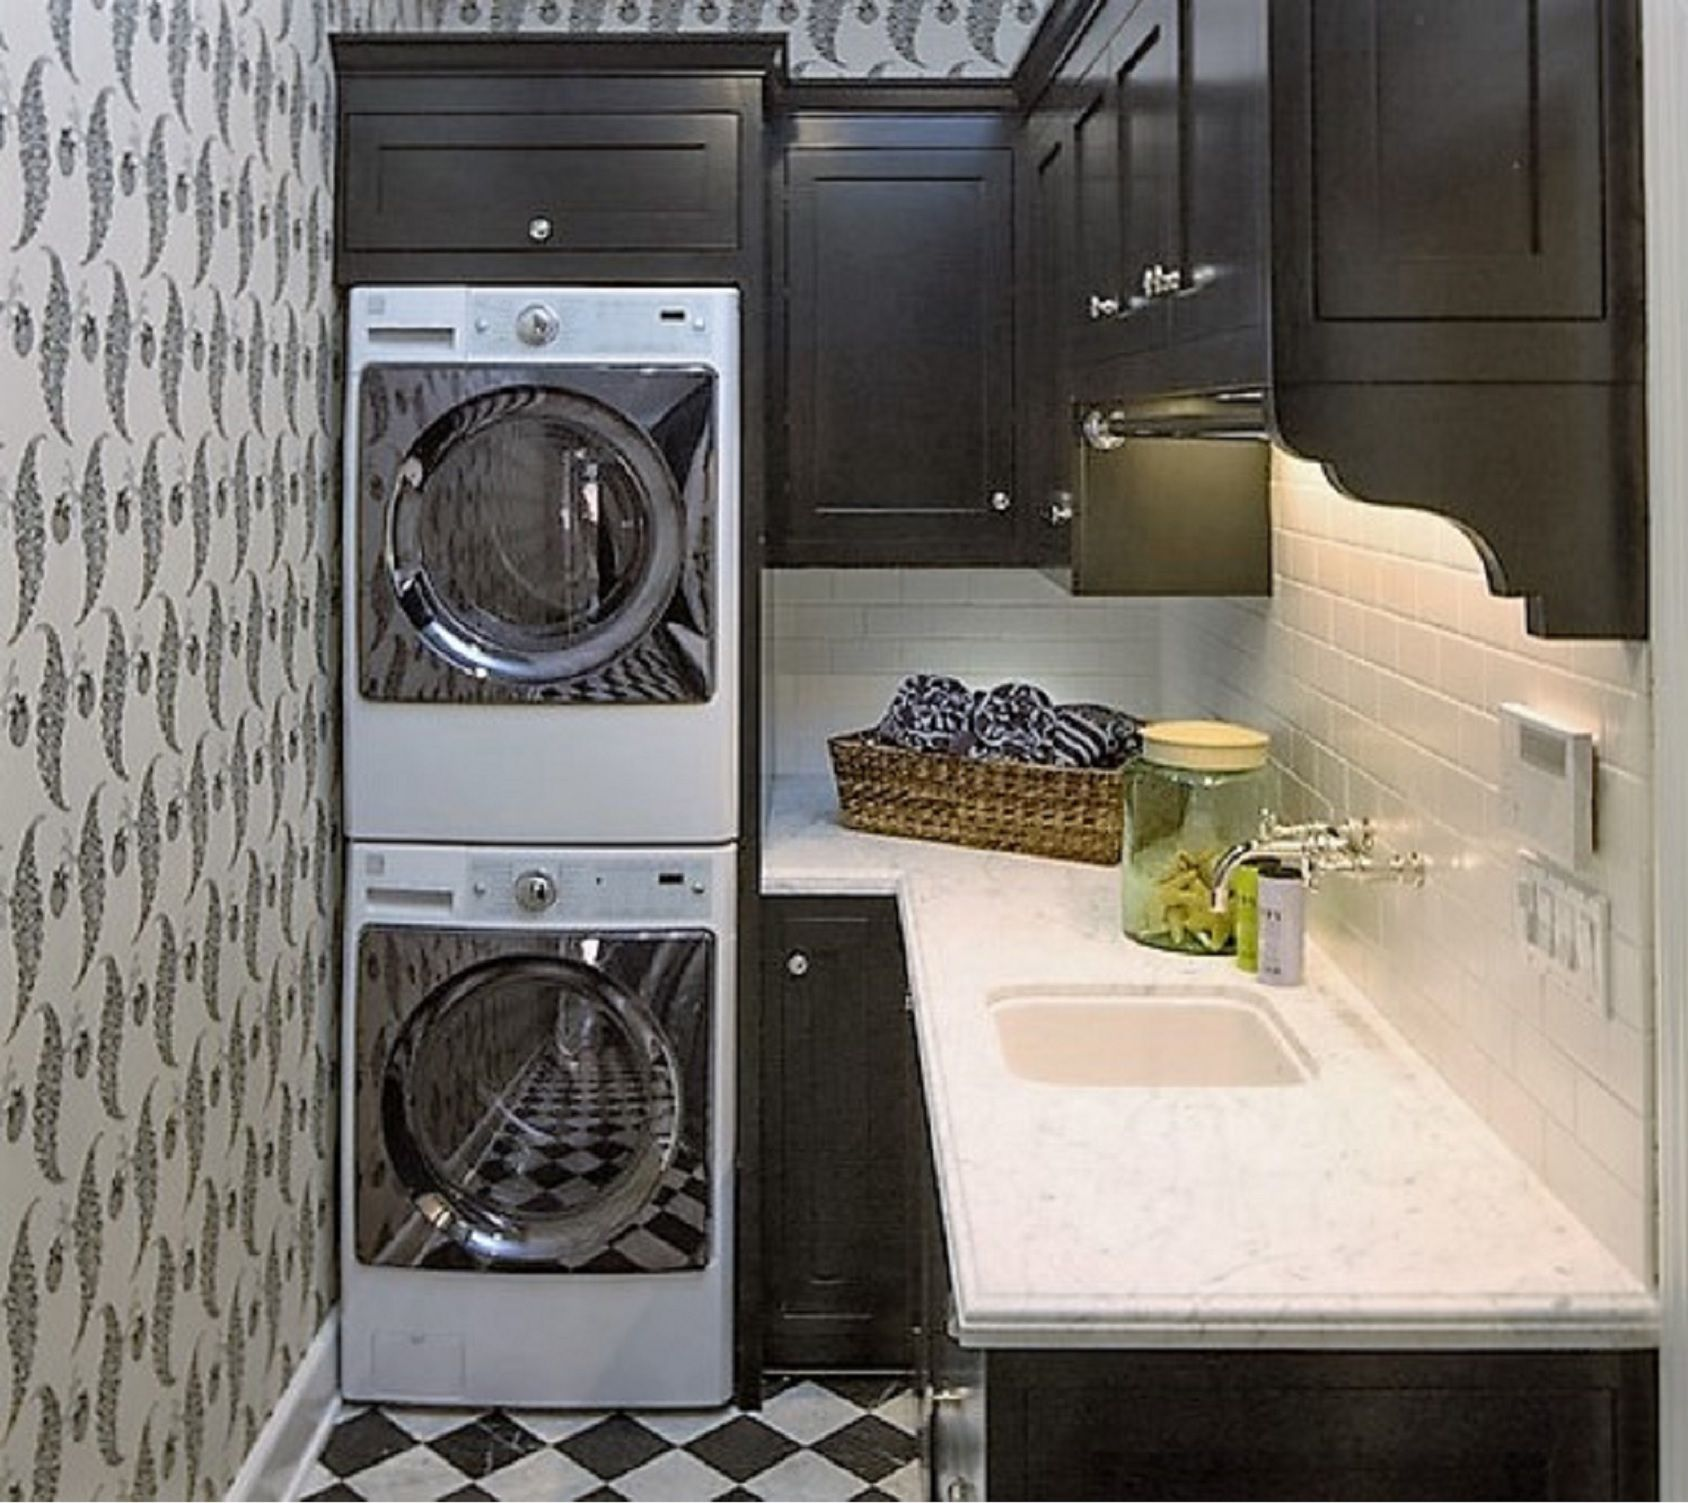 50 Inspiring Laundry Room Design Ideas on kitchen design with high ceilings, kitchen design with butcher block island, bathroom layout with washer dryer, kitchen design with microwave, kitchen design with lots of storage, kitchen with undercounter washer dryer, kitchen design with refrigerator, kitchen sink washer and dryer, kitchen design layout with washer dryer in it,